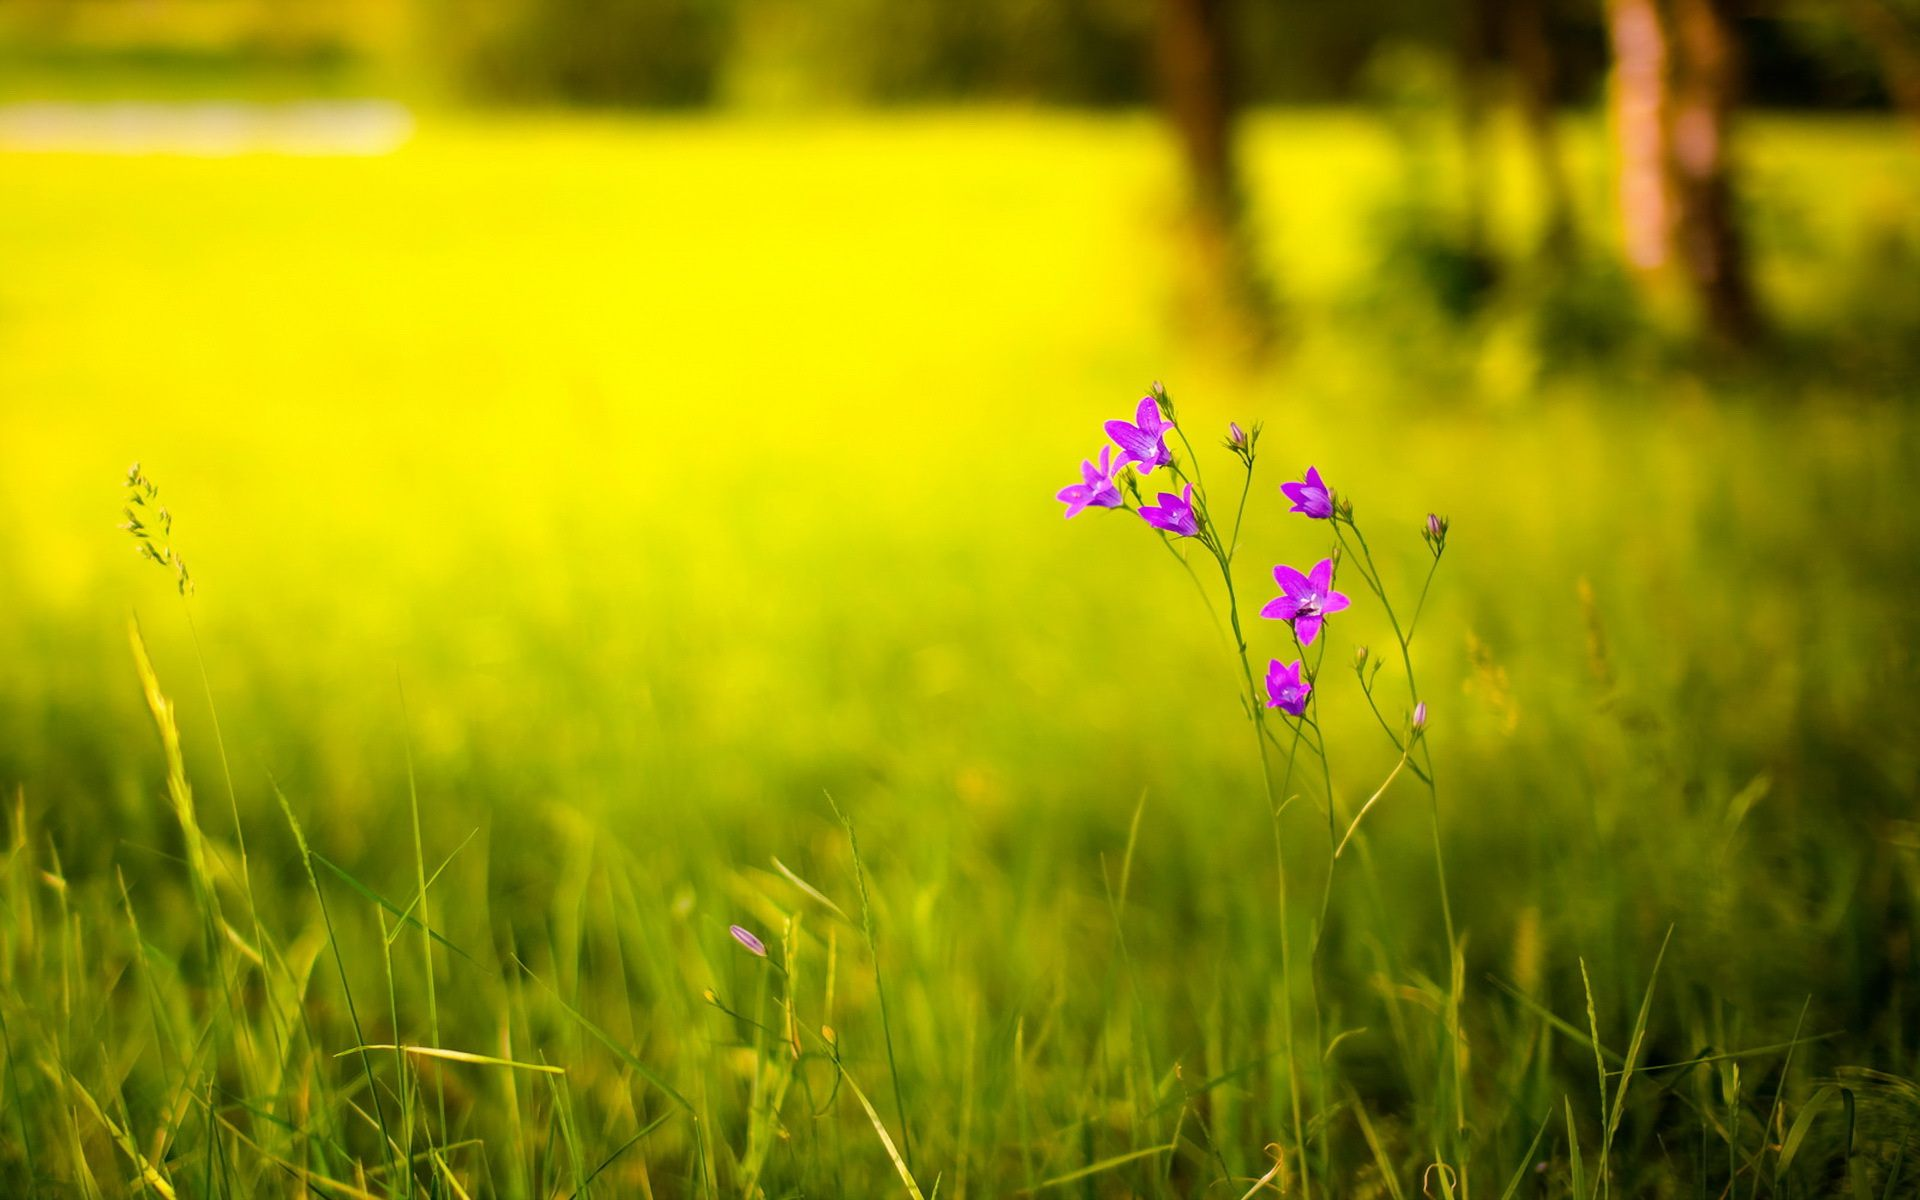 On The Green Blurred Background Miriadna Com Blurred Background Background Desktop Wallpaper